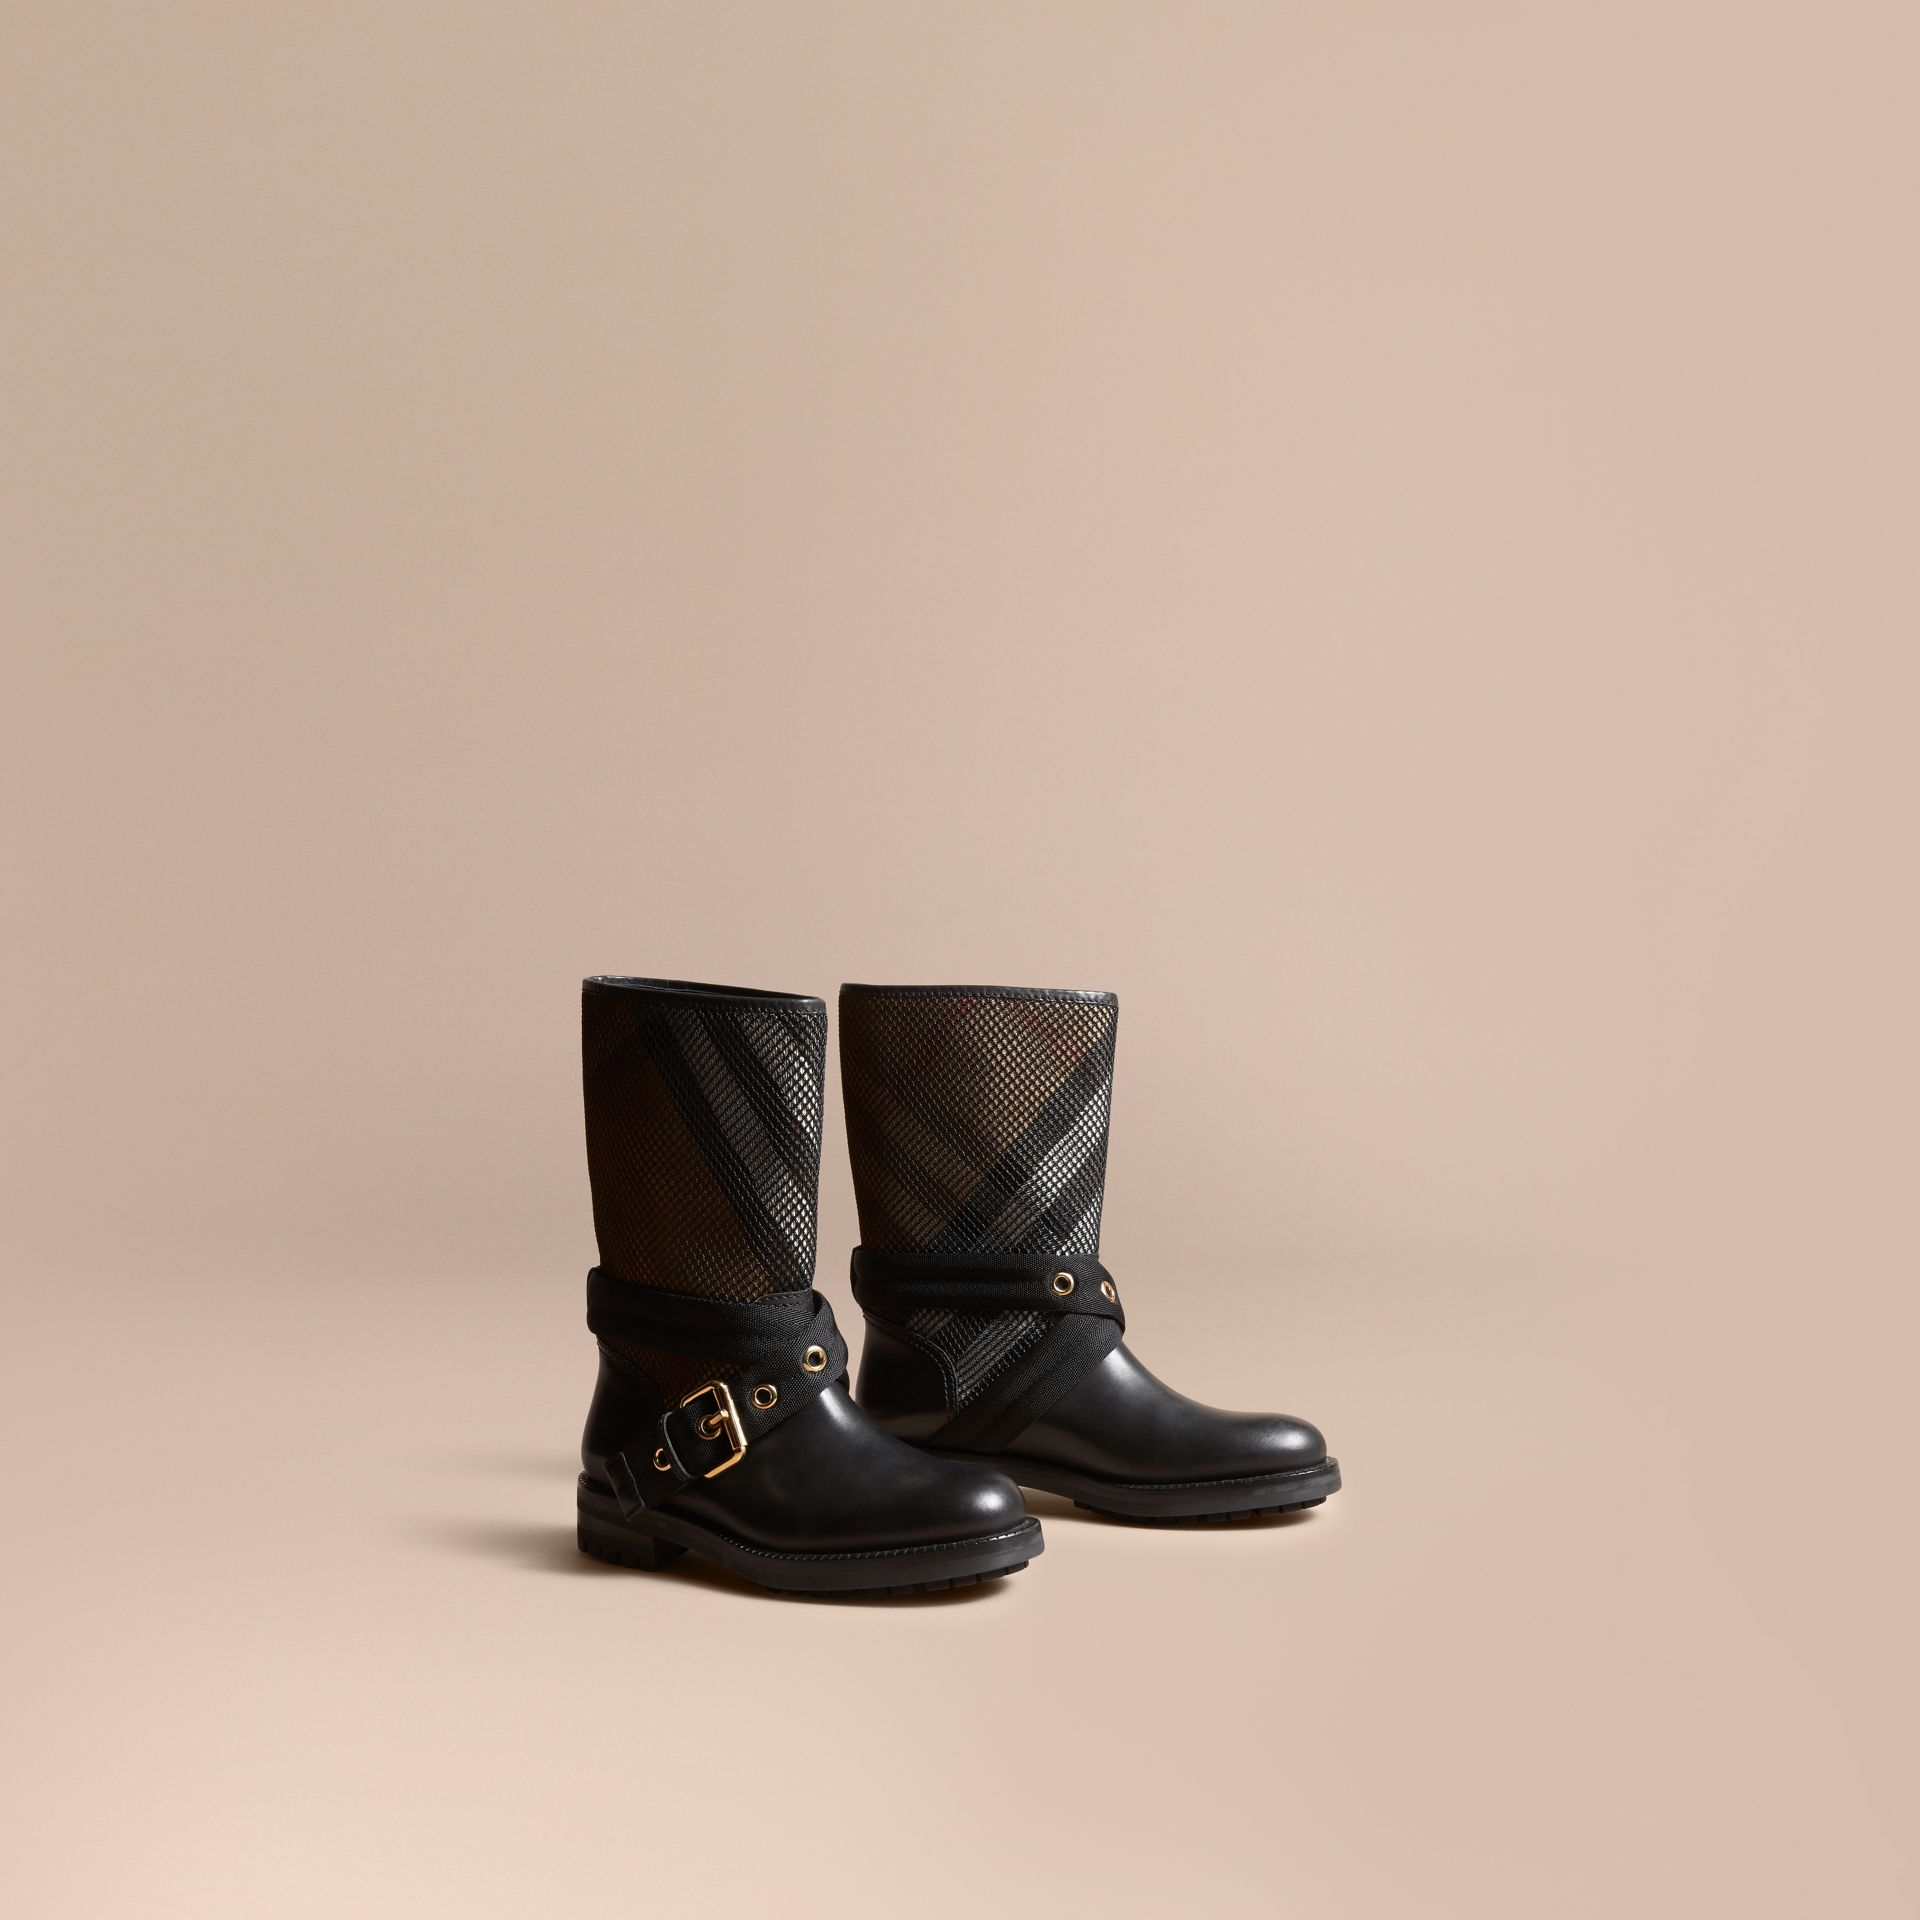 Leather, Mesh and House Check Boots in Black - Women | Burberry - gallery image 1